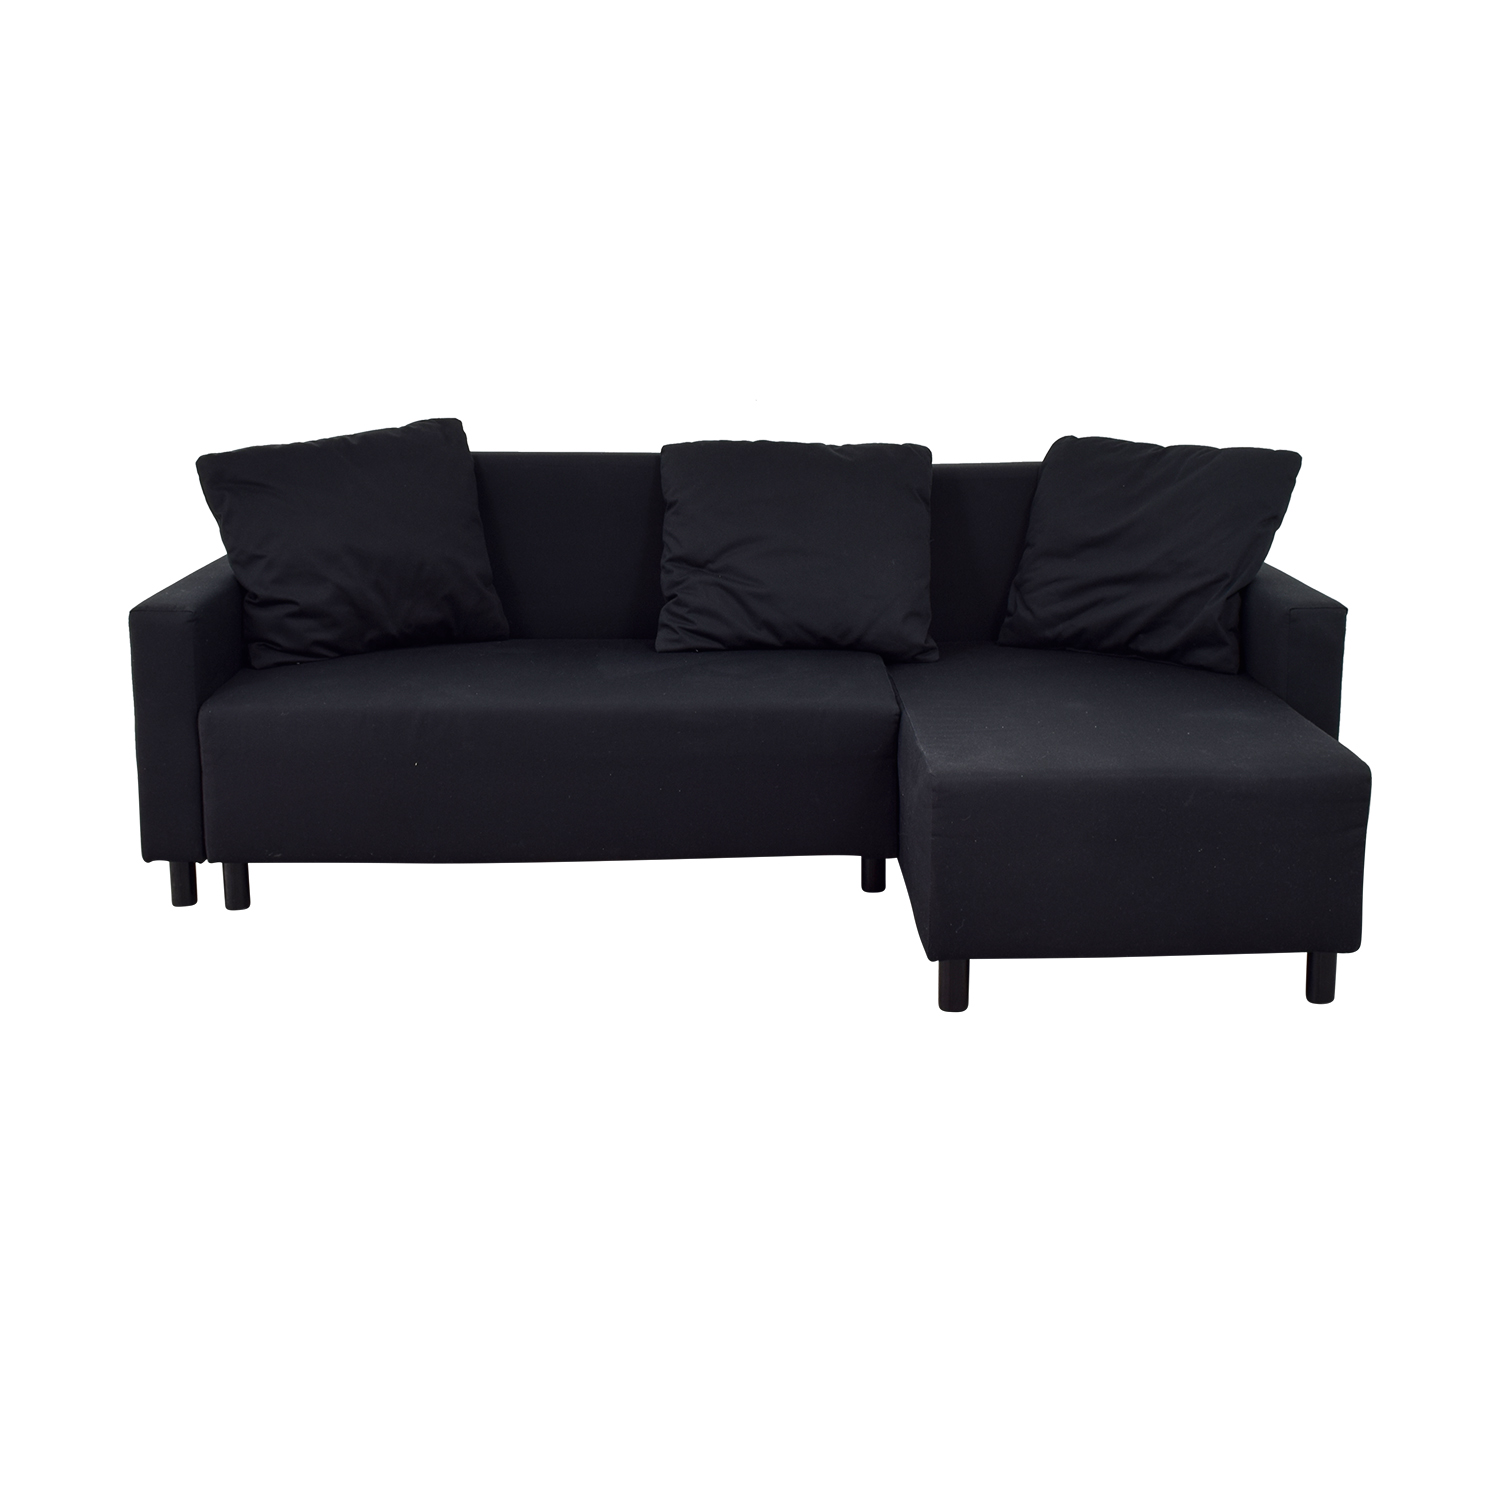 IKEA IKEA Black Sleeper Chaise Sectional with Storage for sale